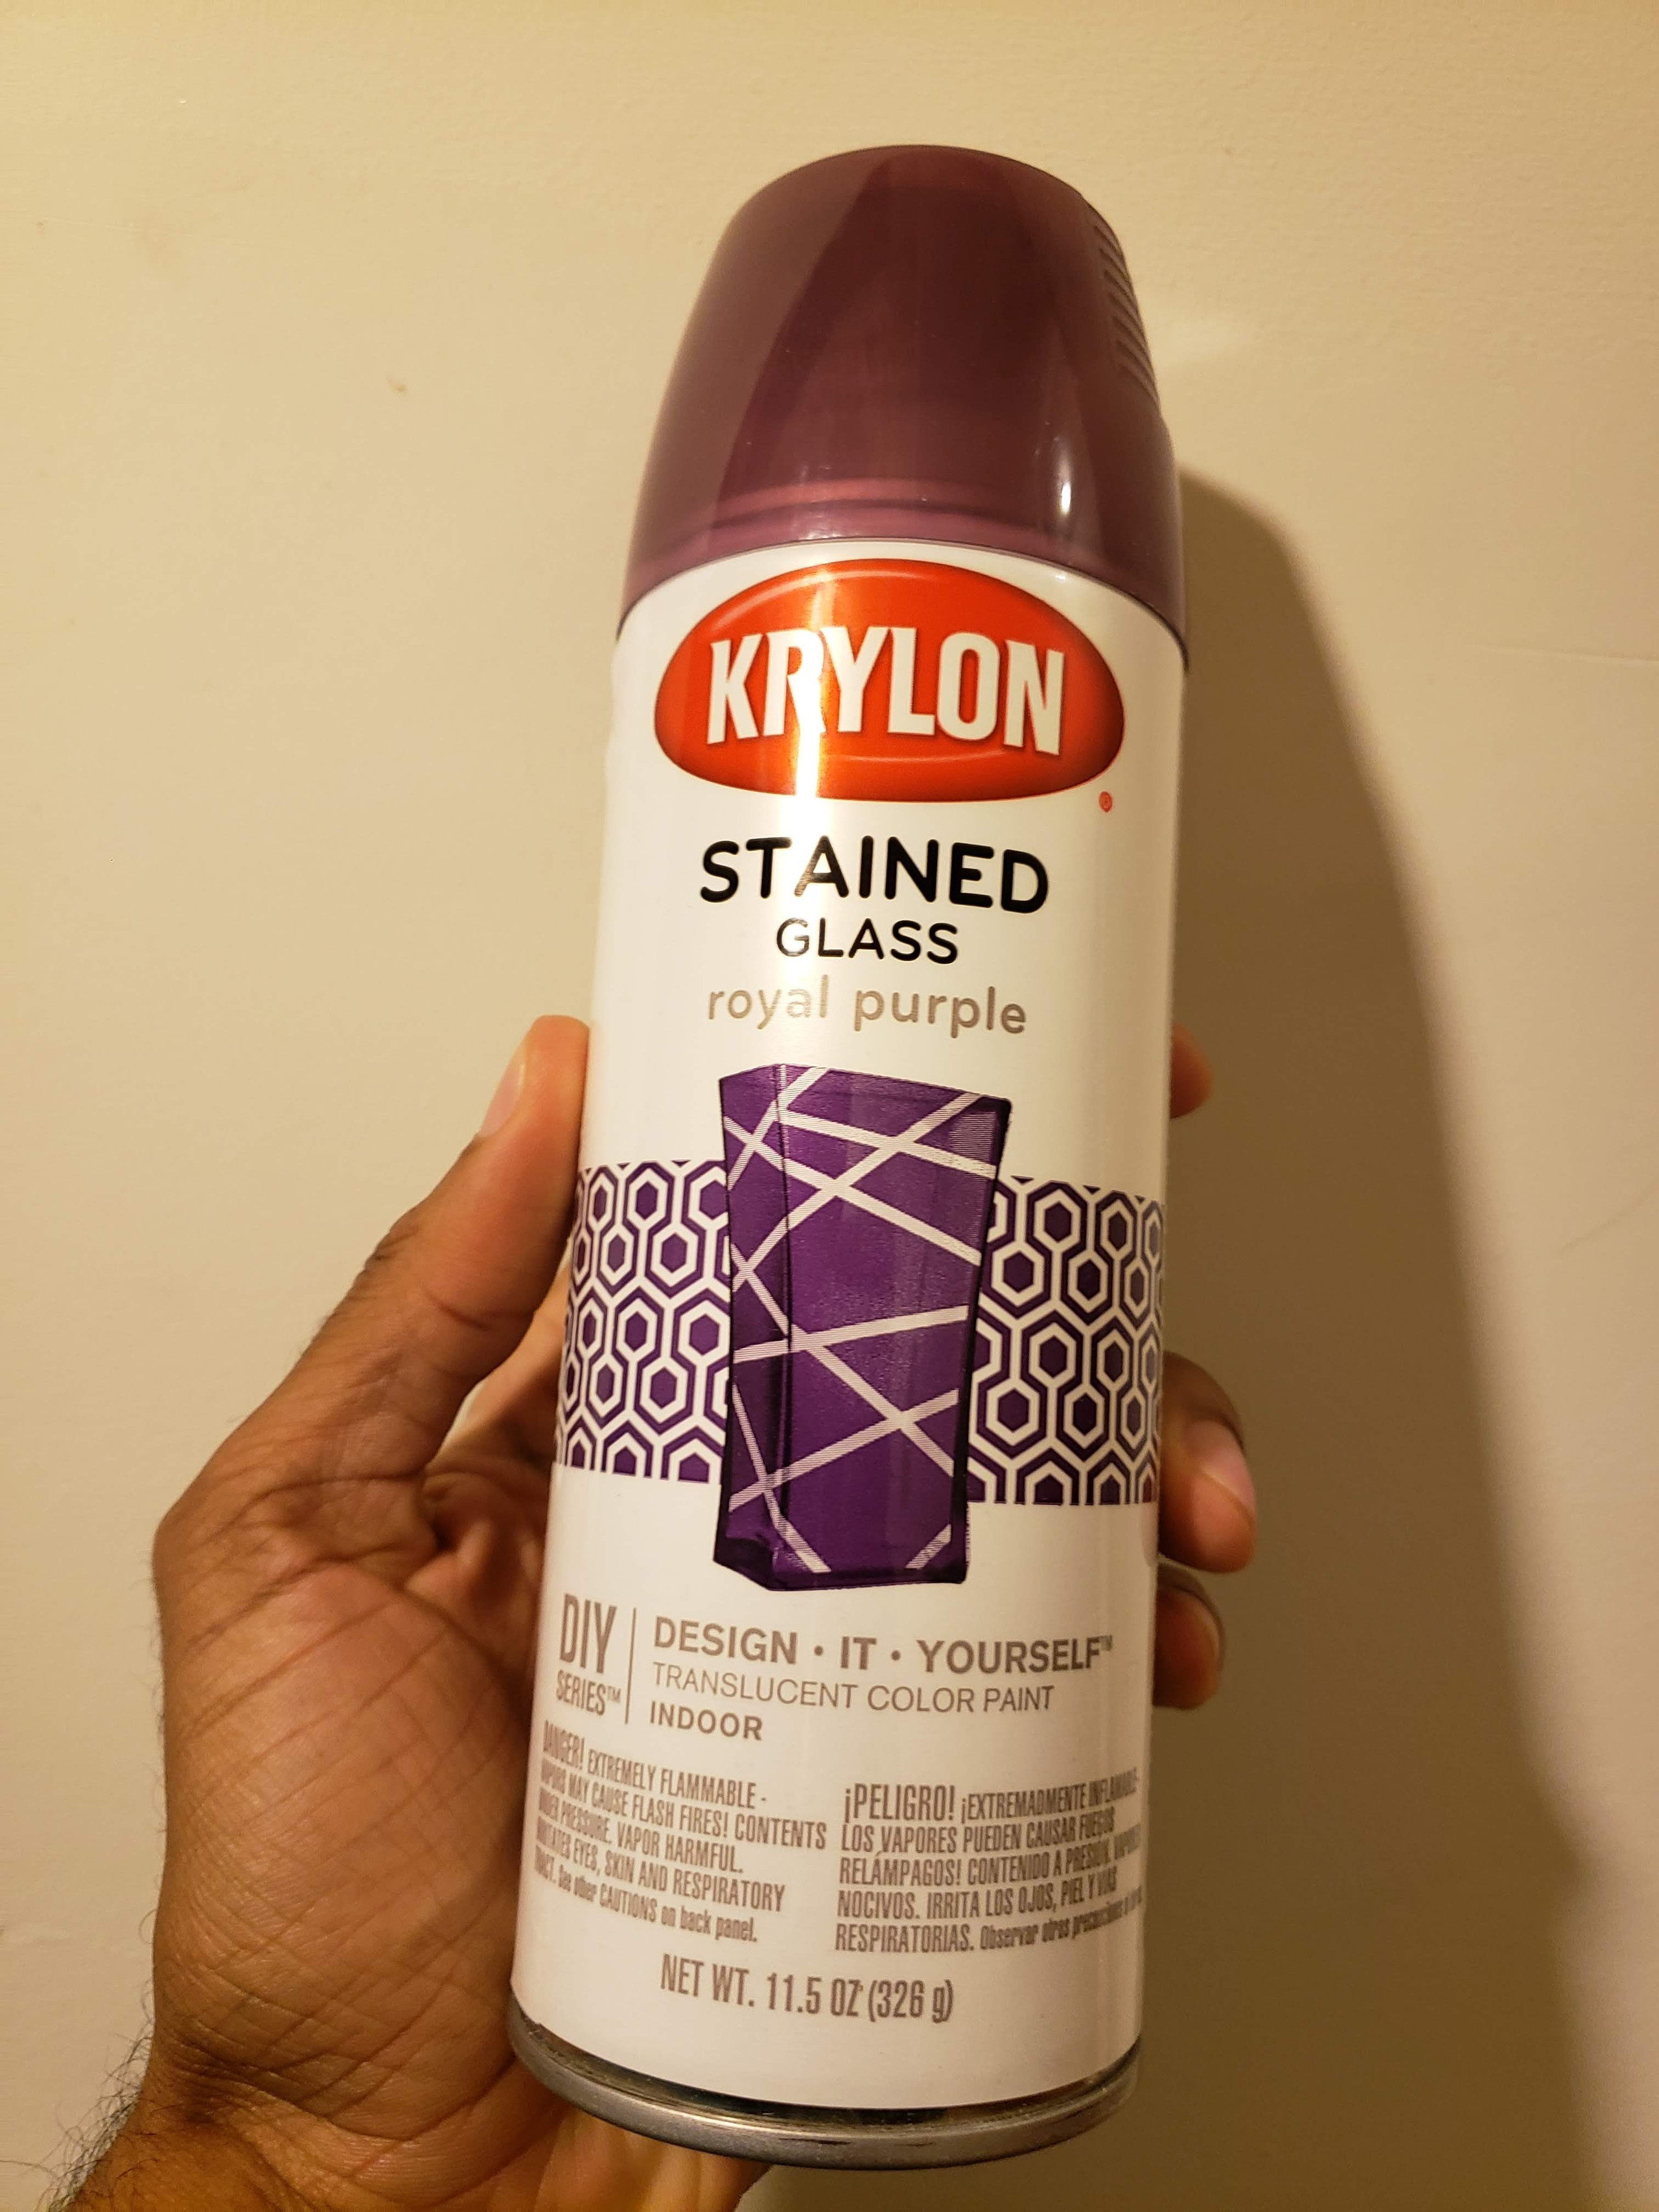 Krylon, stained glass, royal purple, spray paint,wood shop, DIY, Wood projects, wood frame, shadow box, crayola crayon, dremel router, inlay, epoxy